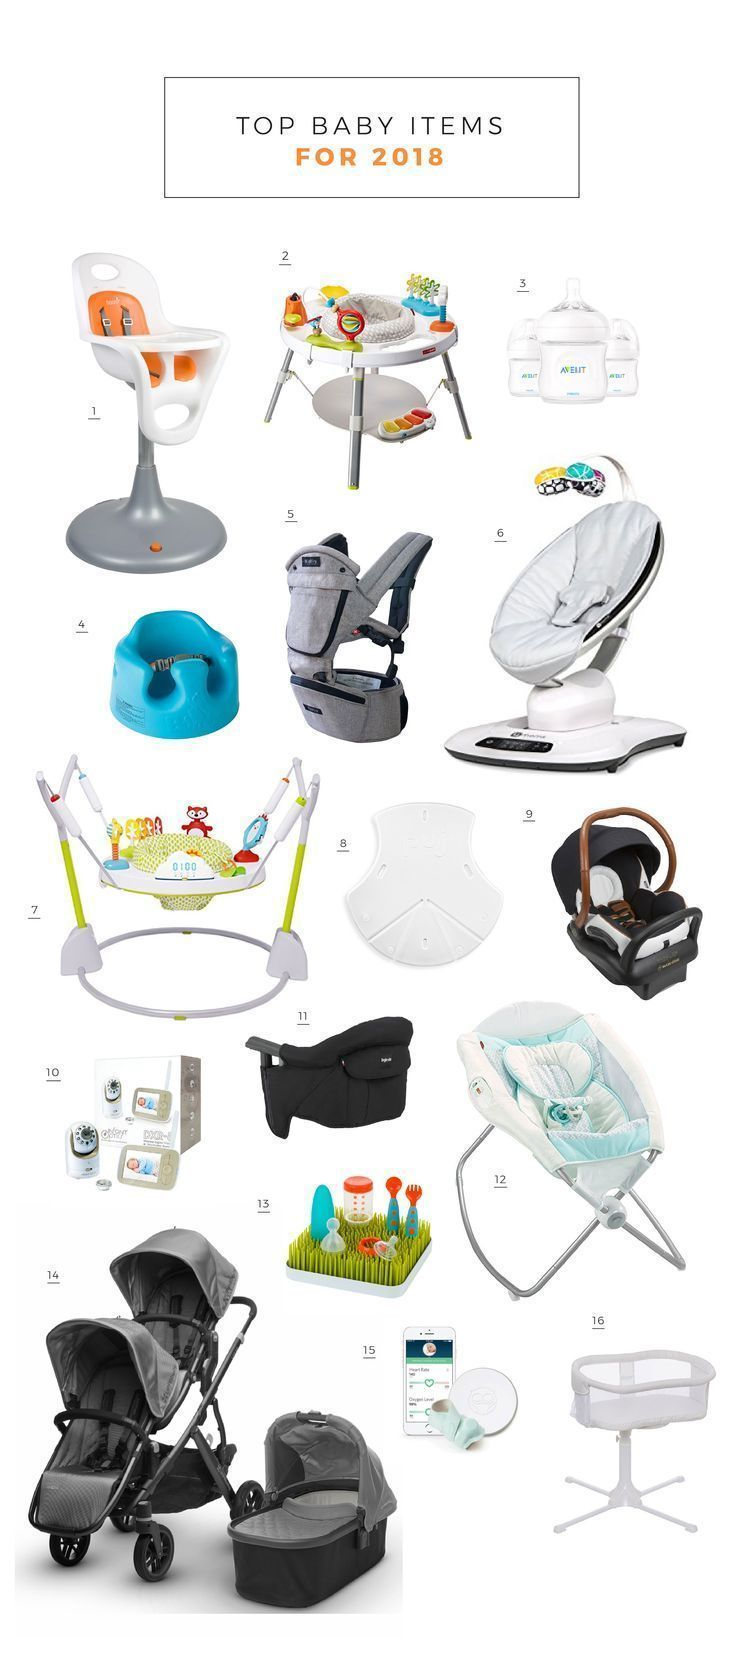 Top Baby Items of 2018   Baby items must have, Baby ...